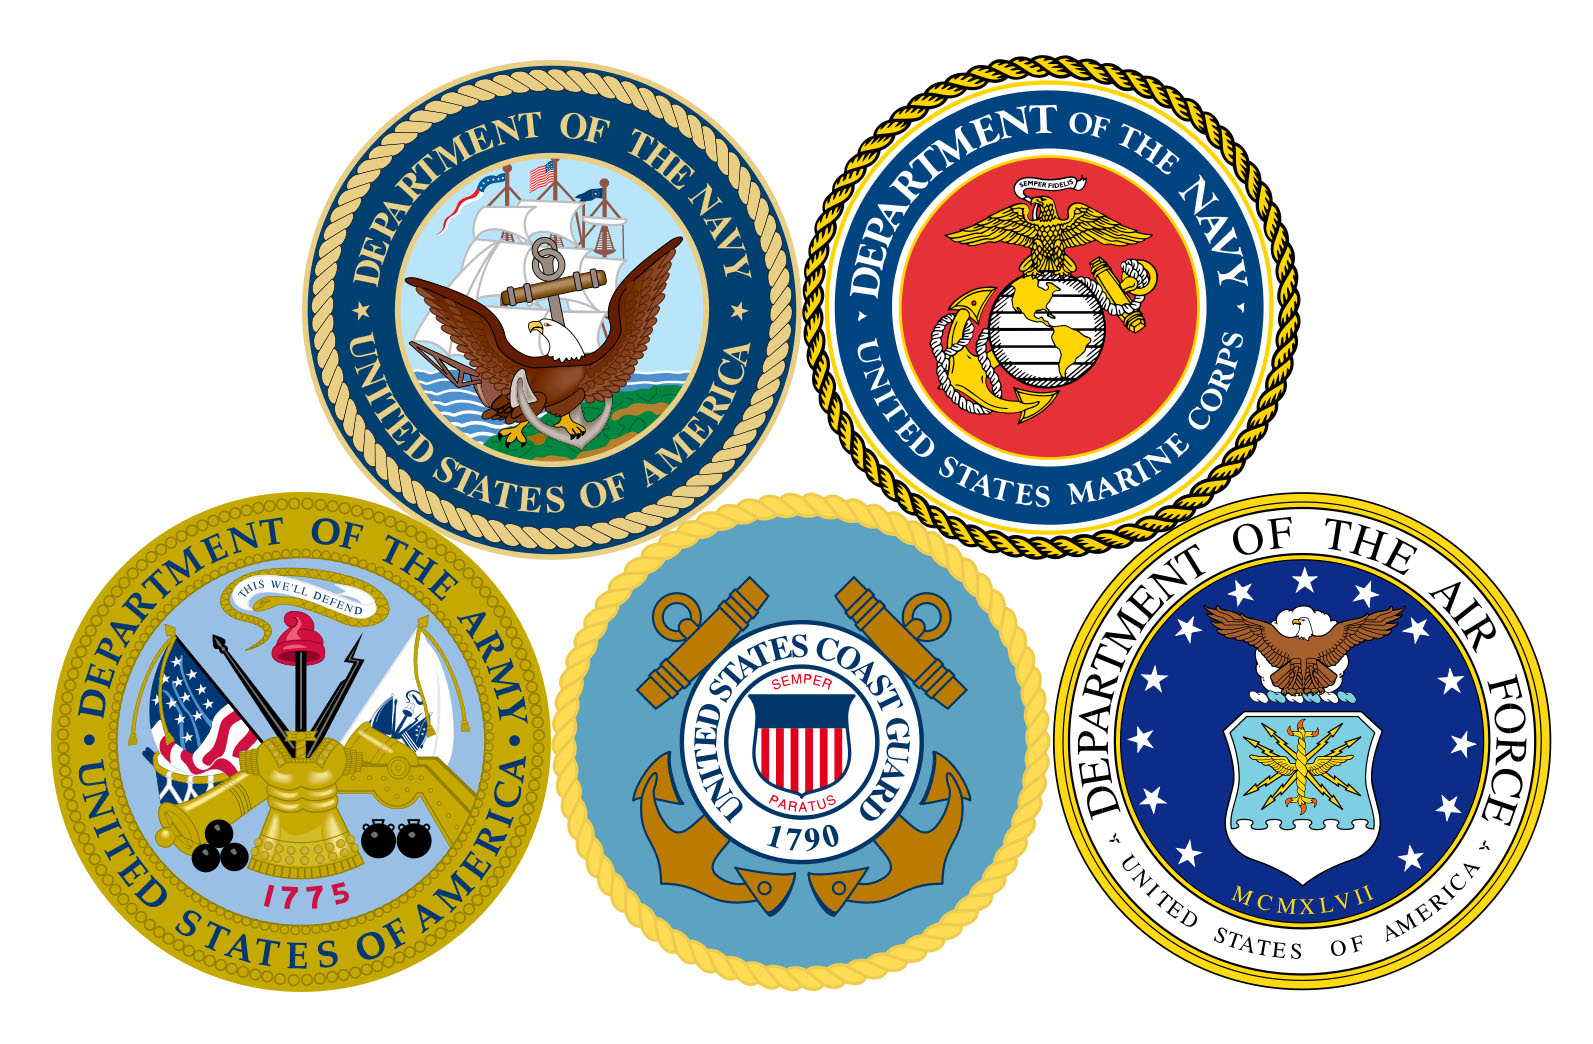 Honoring our Service Members